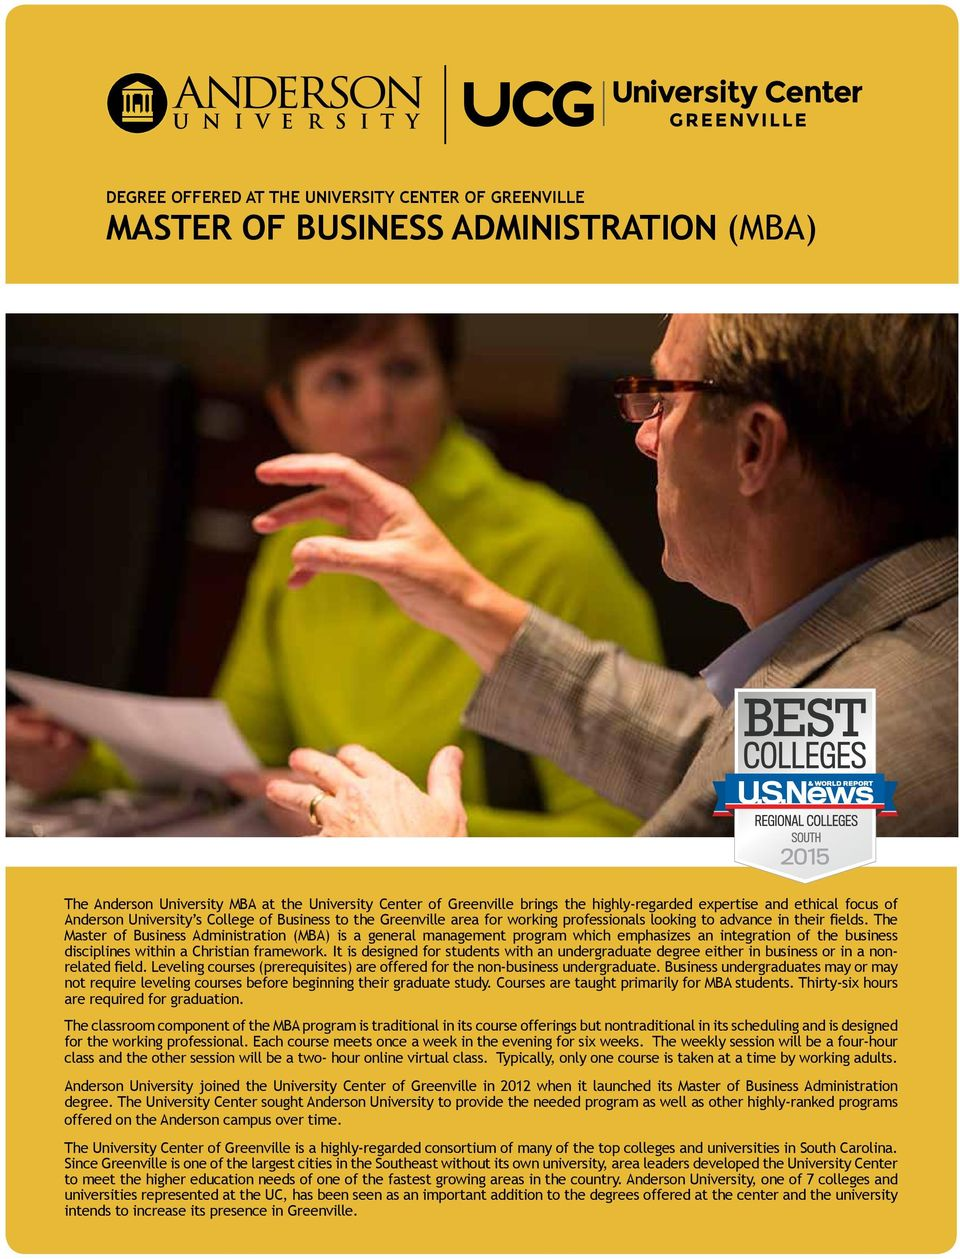 The Master of Business Administration (MBA) is a general management program which emphasizes an integration of the business disciplines within a Christian framework.